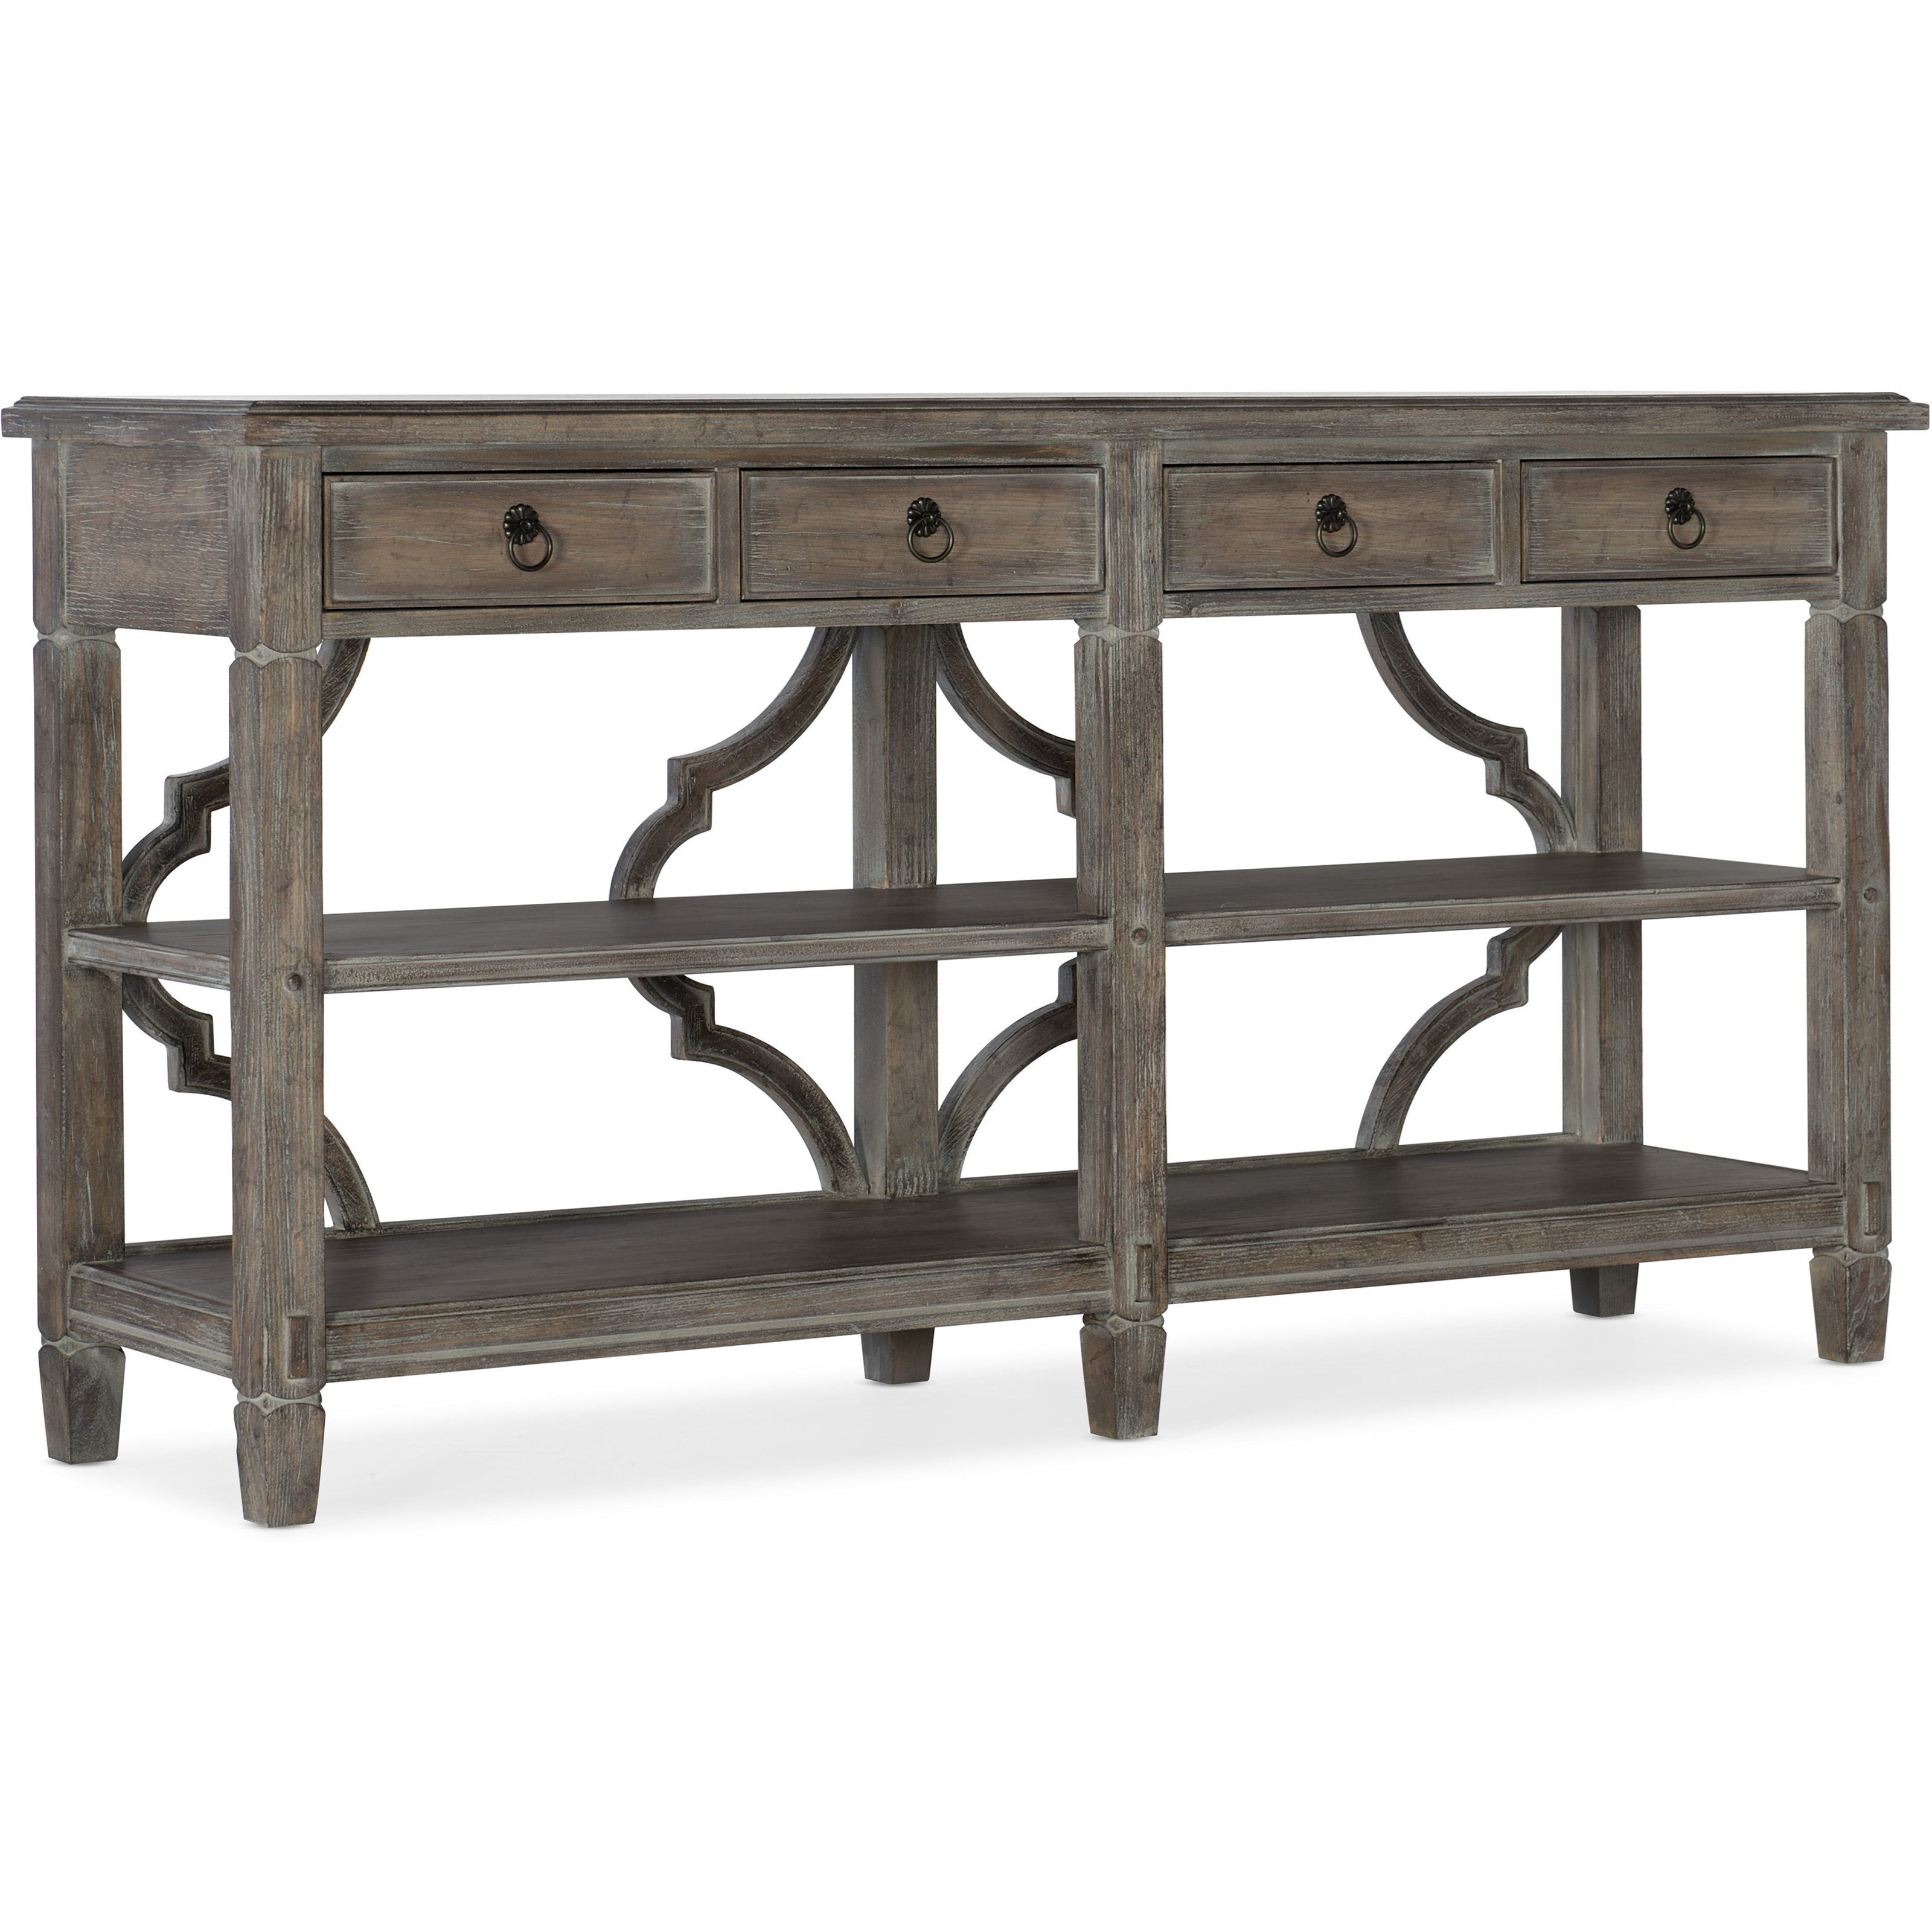 Modele Console Table by Hooker Furniture at Miller Waldrop Furniture and Decor